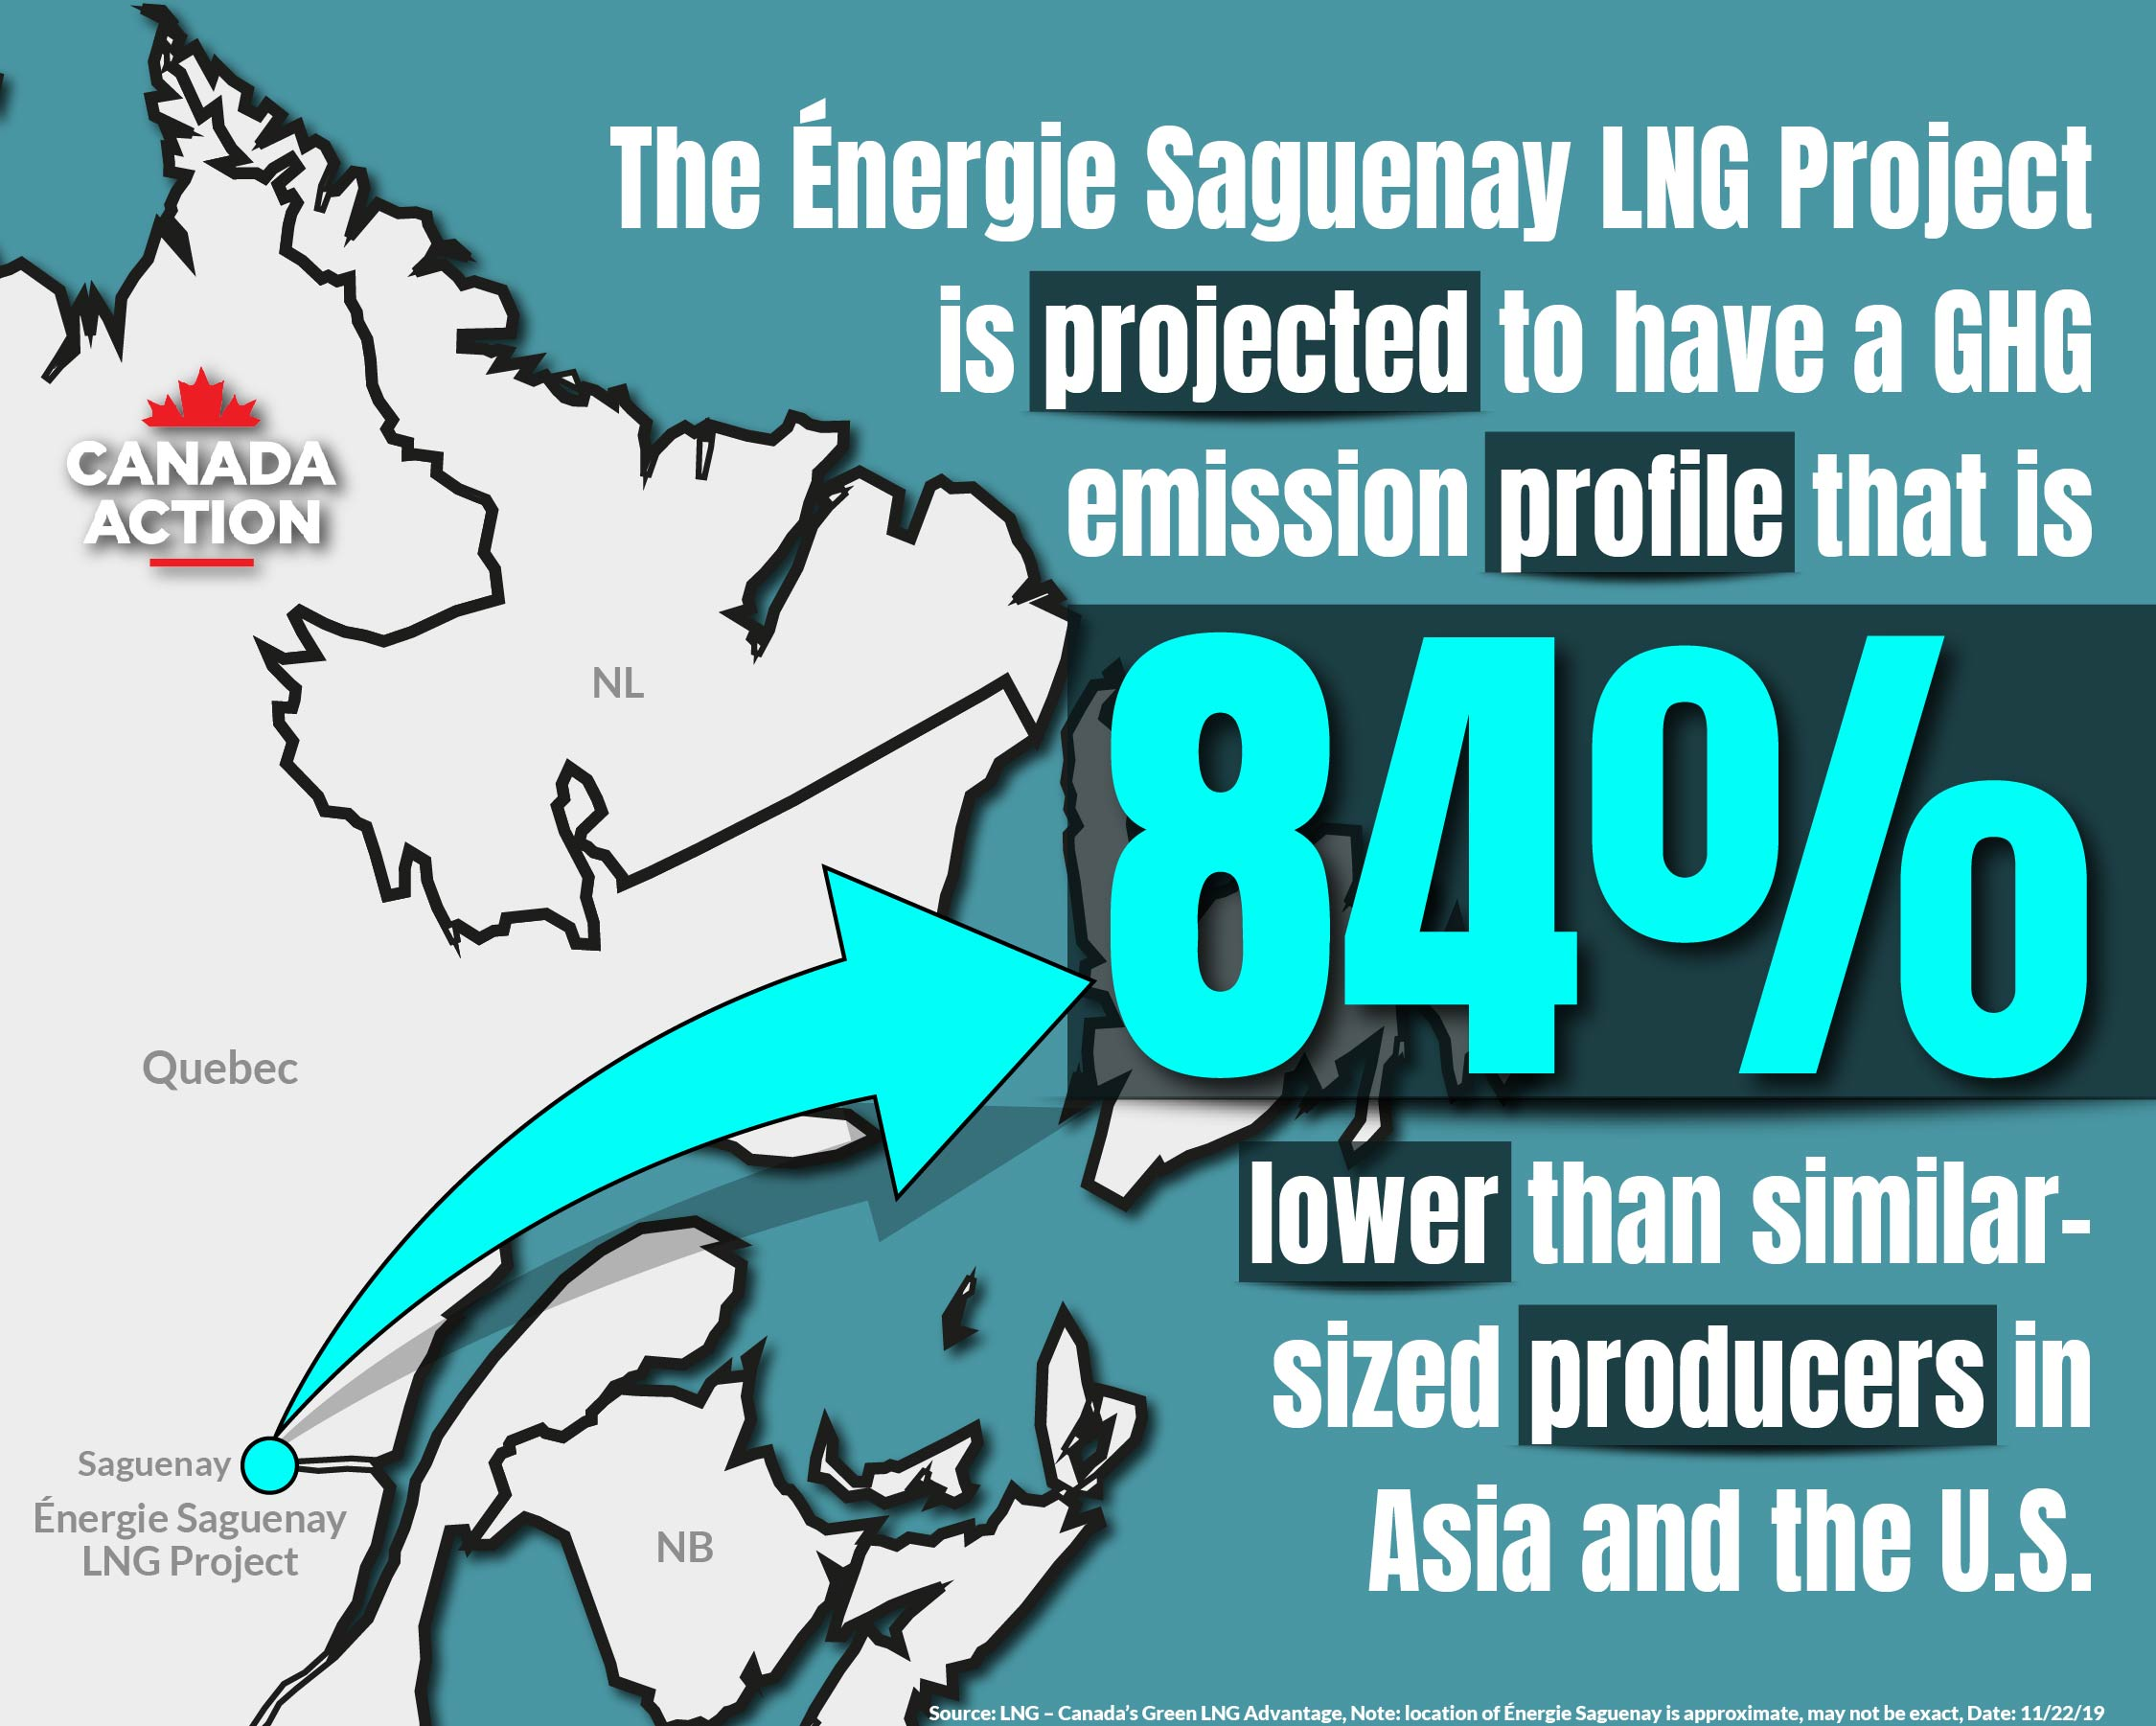 Canada LNG Energie Saguenay GHG Emission Profile One of the Best in the World